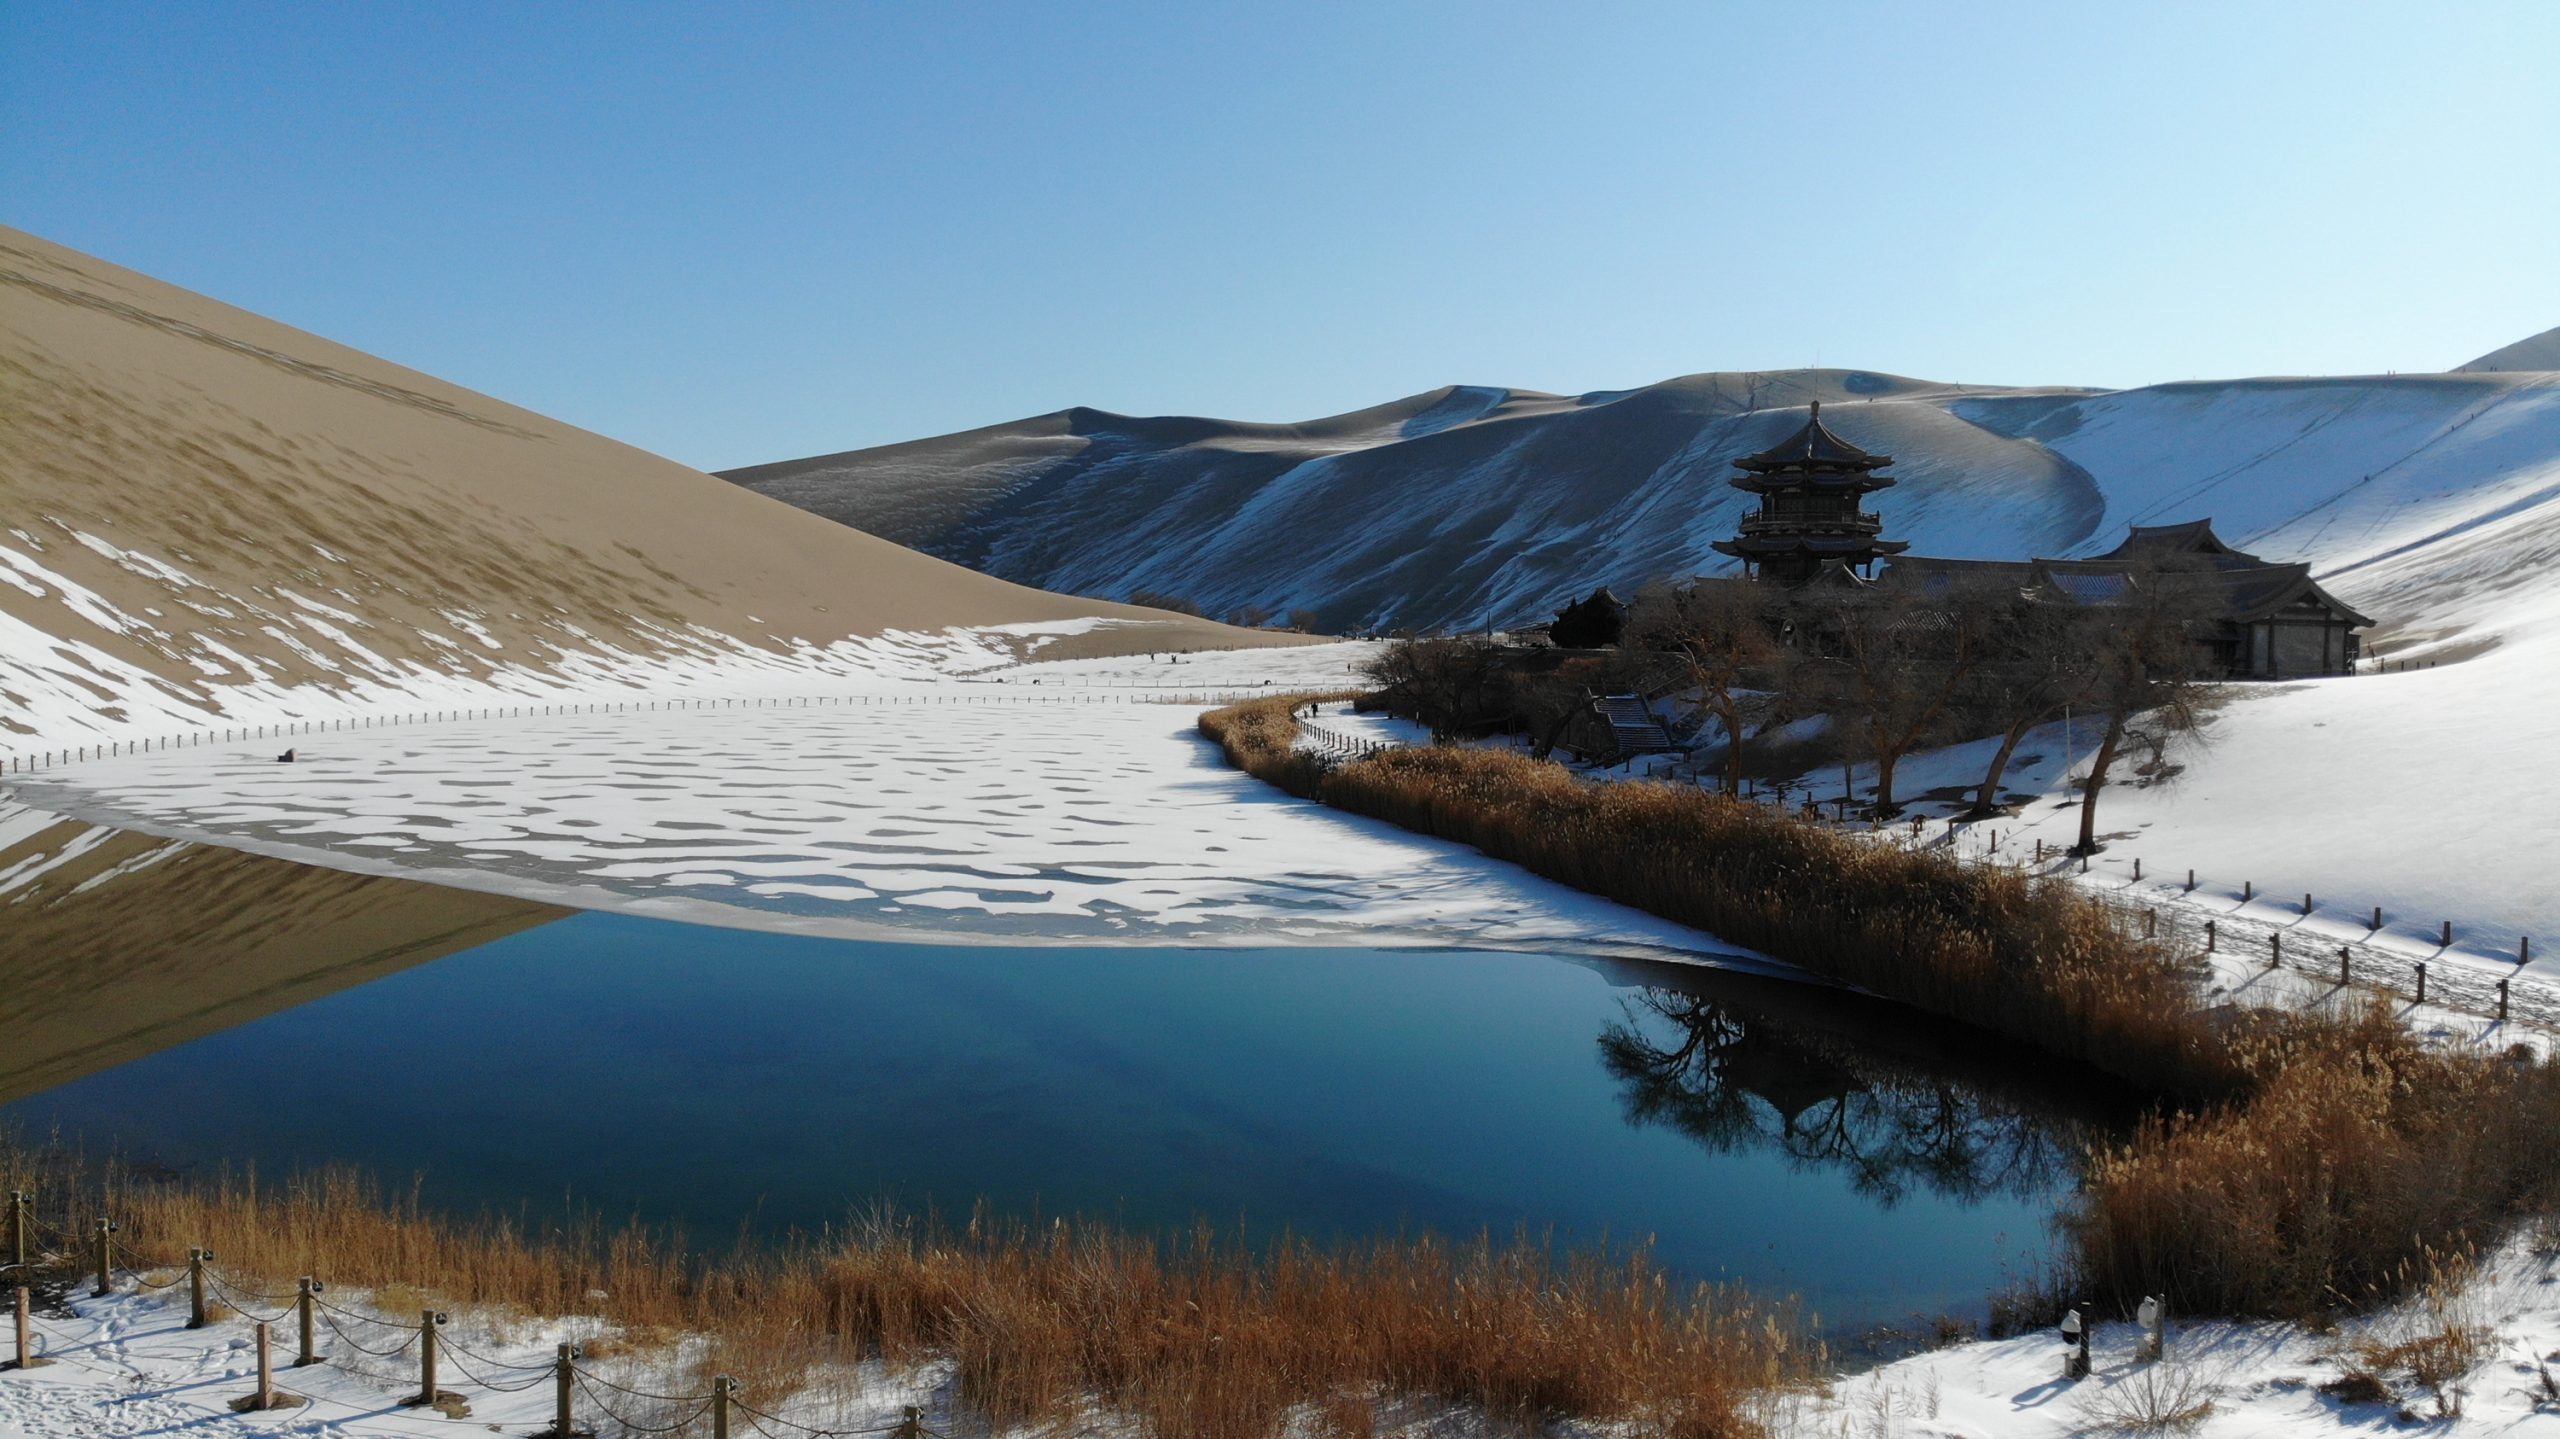 CHINA-GANSU-DUNHUANG-SNOW SCENERY (CN)